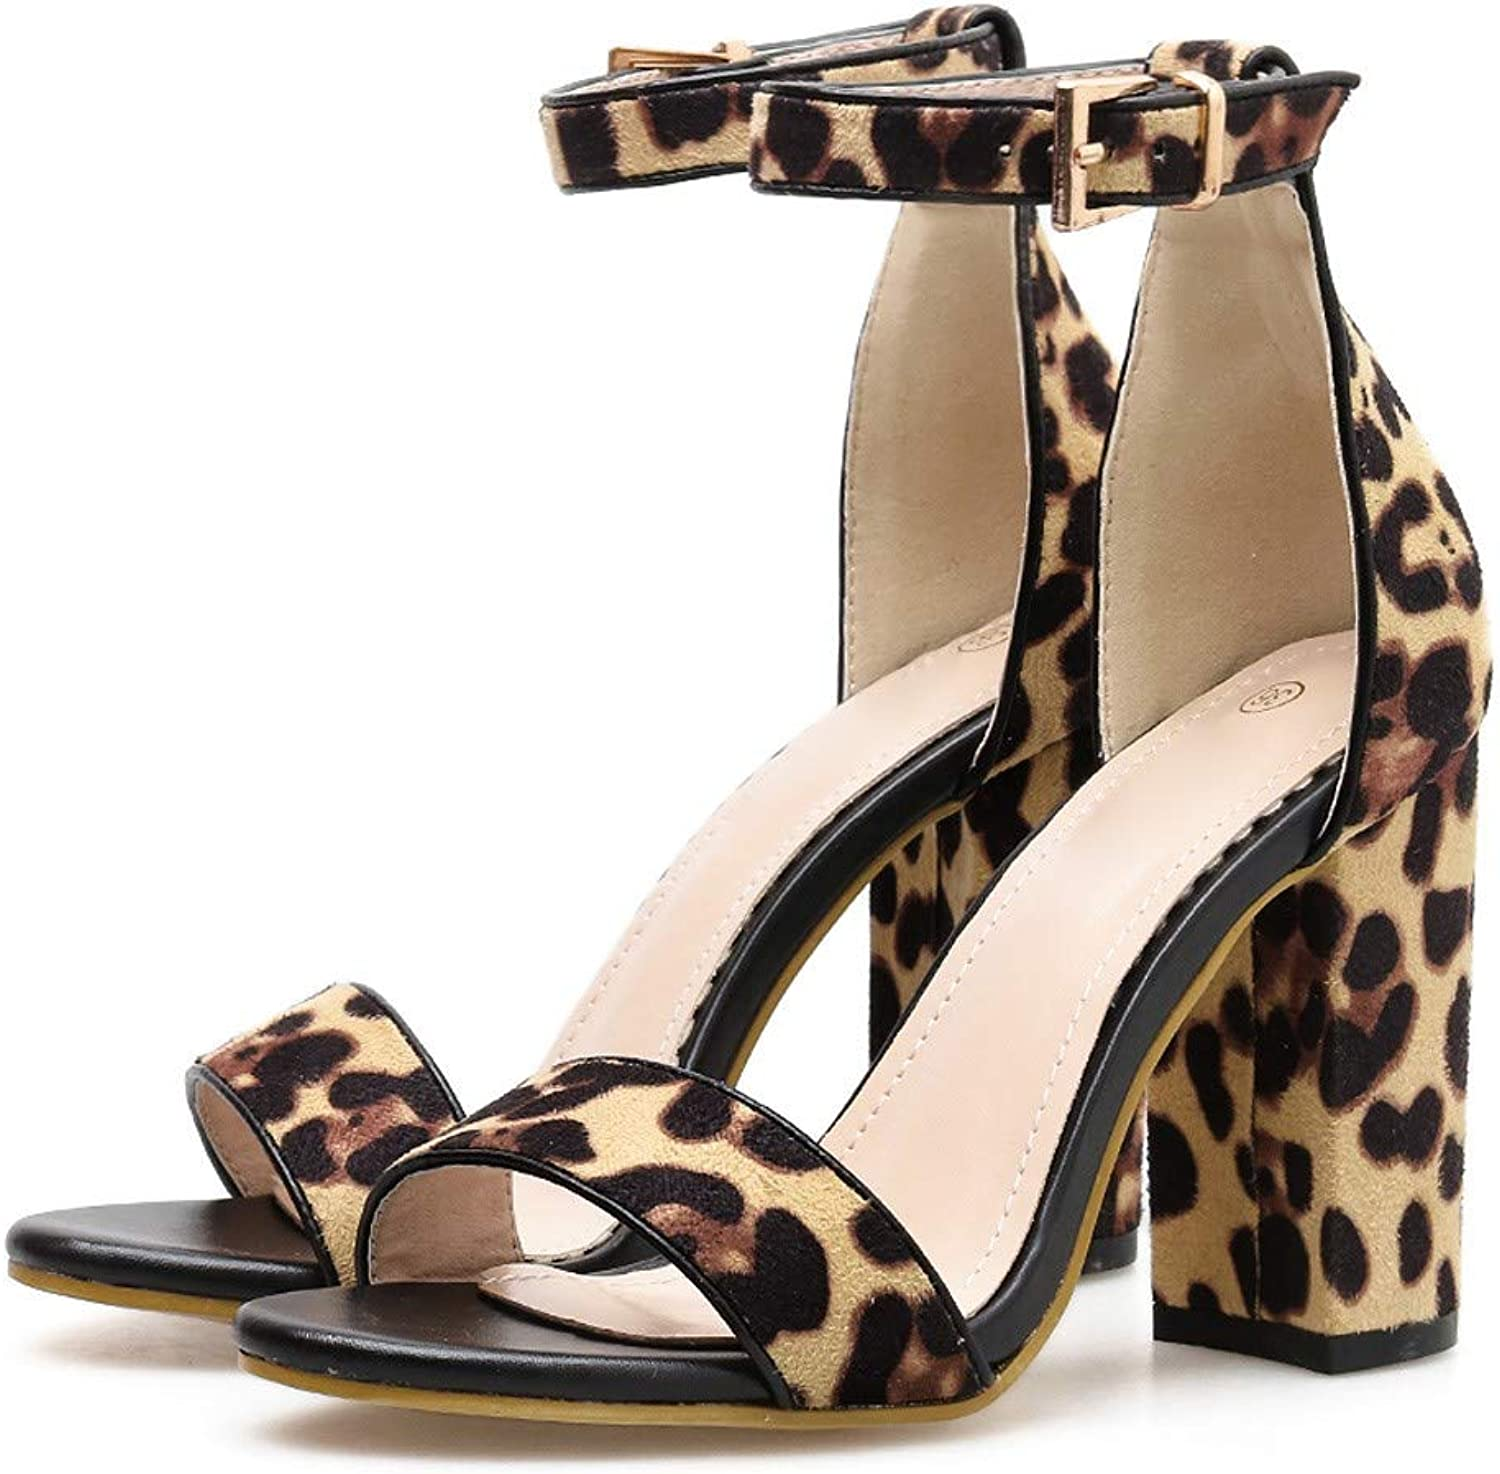 WM & MW Women Sandals Peep Toe Sandals Fashion Leopard High Heel Sandals Sexy Buckle Ankle Strap Square Heel shoes